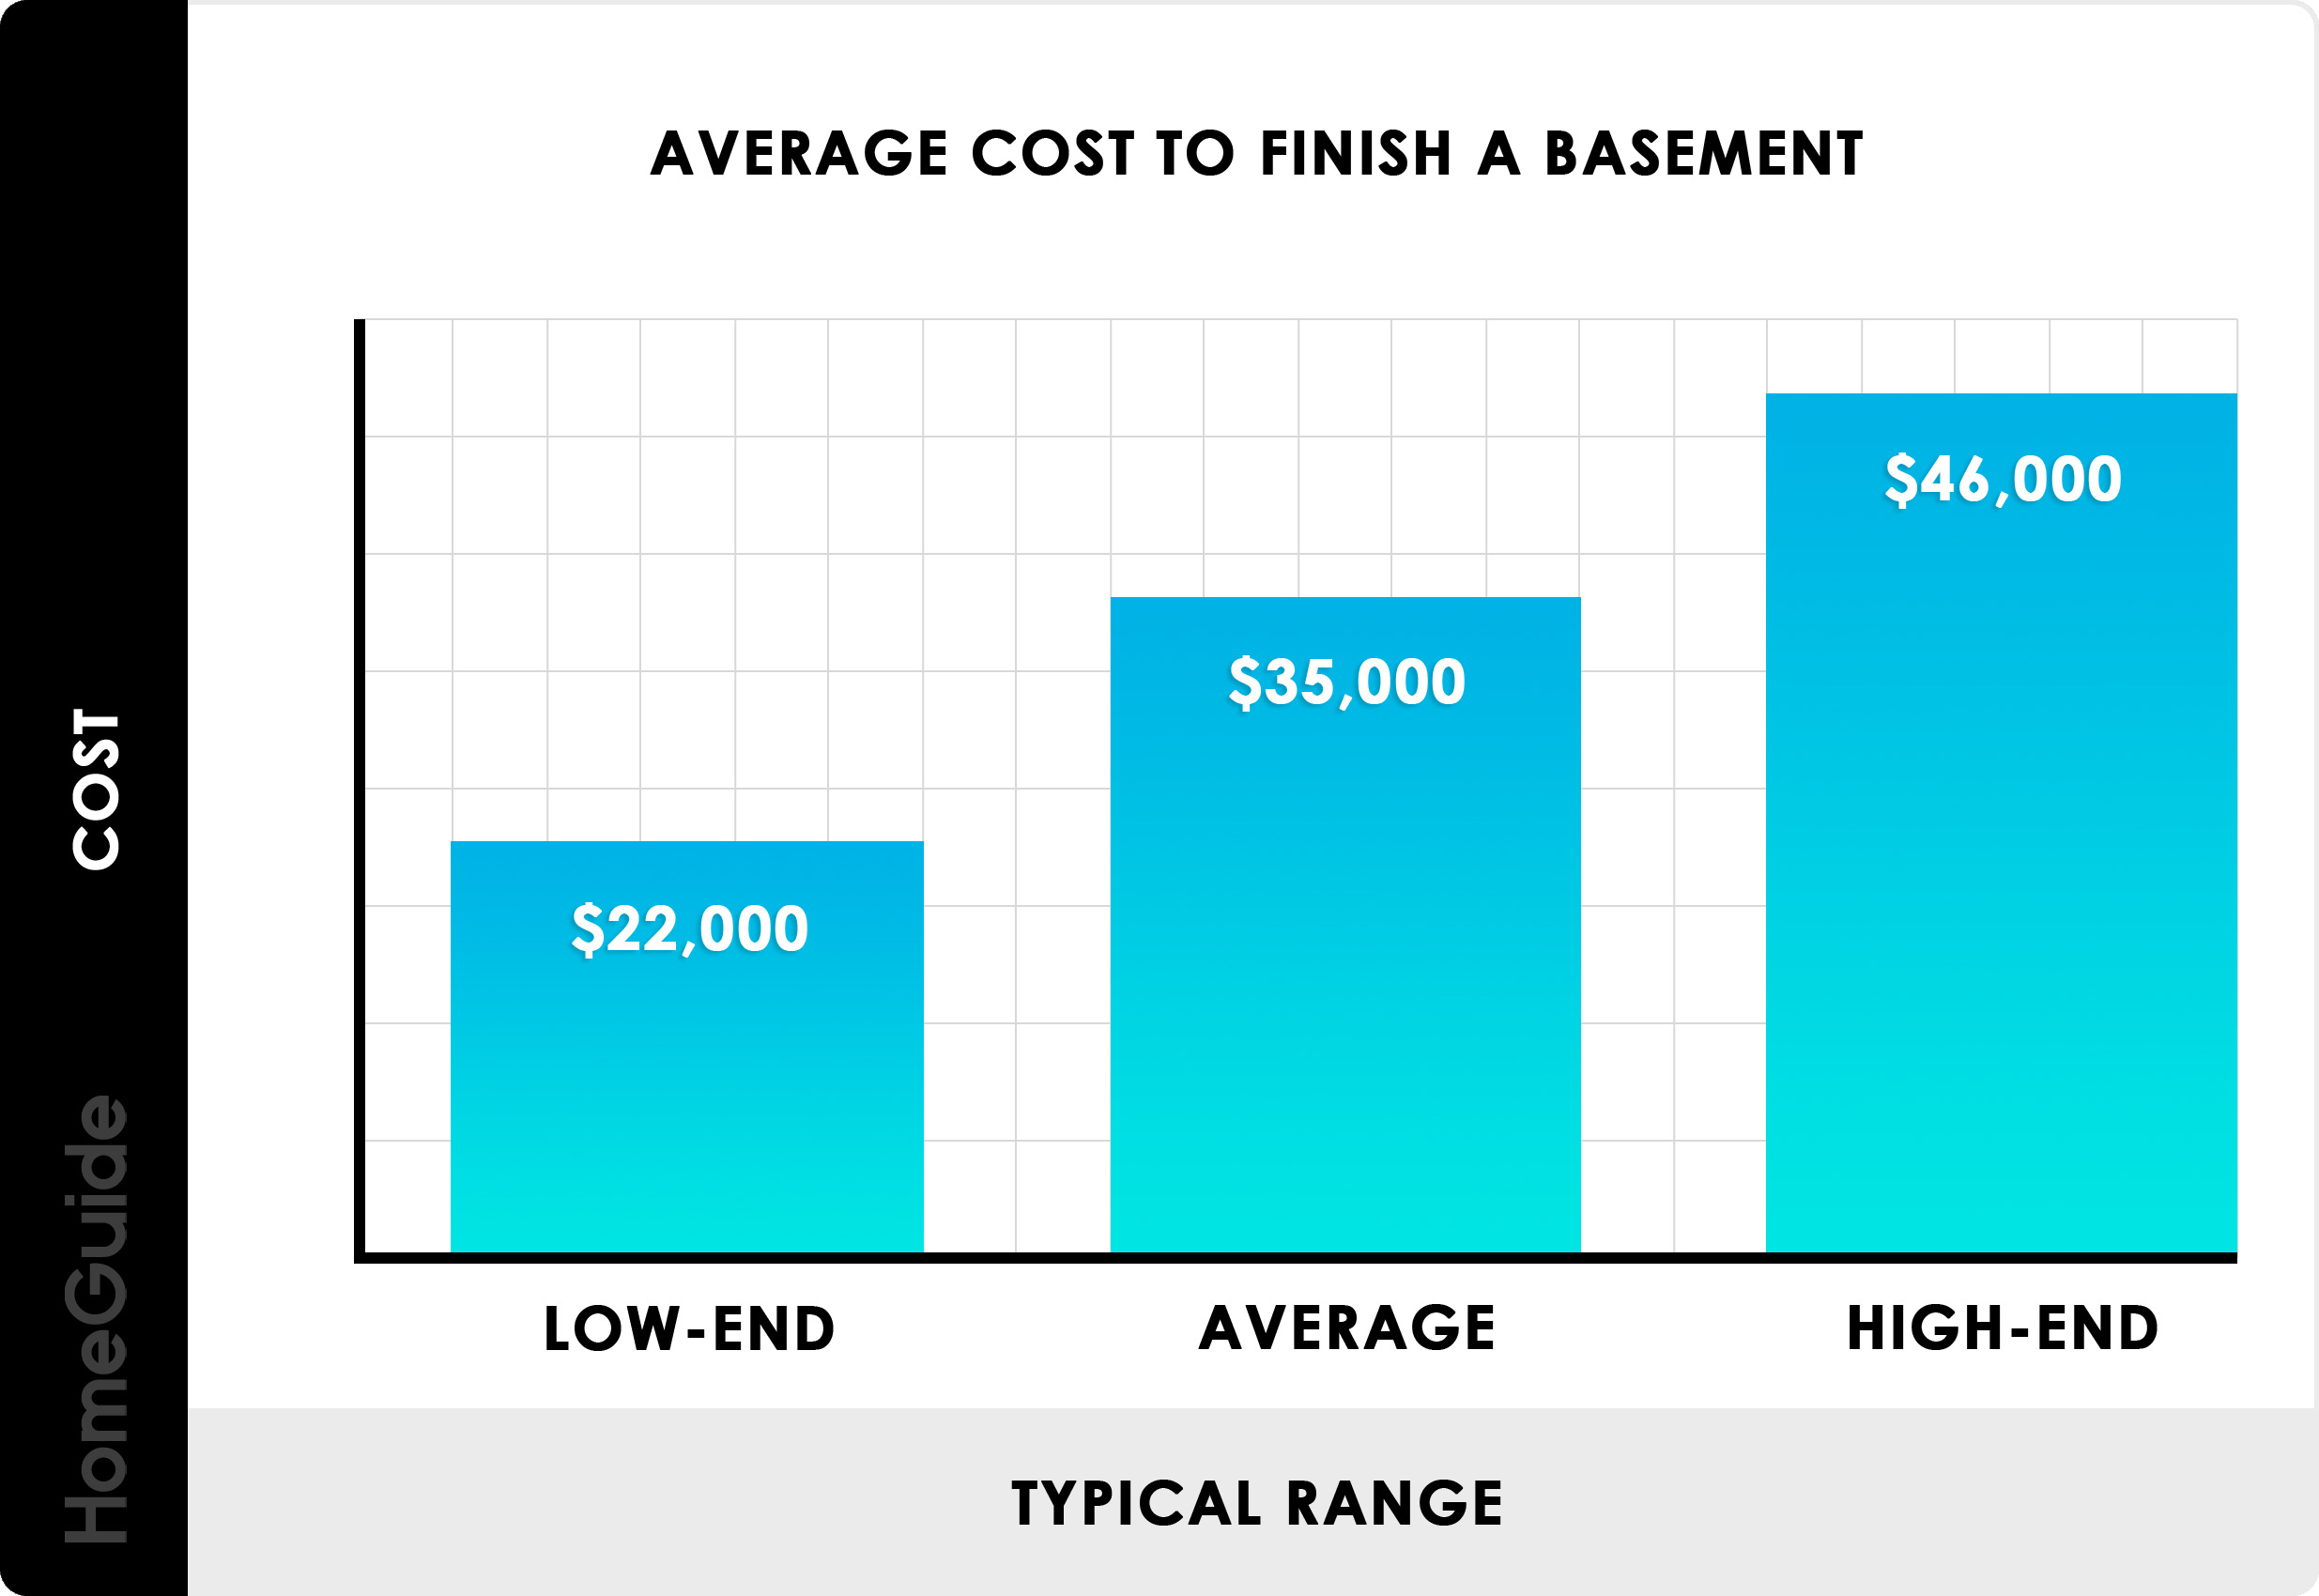 2019 Cost To Finish A Basement | Average Estimator (Per